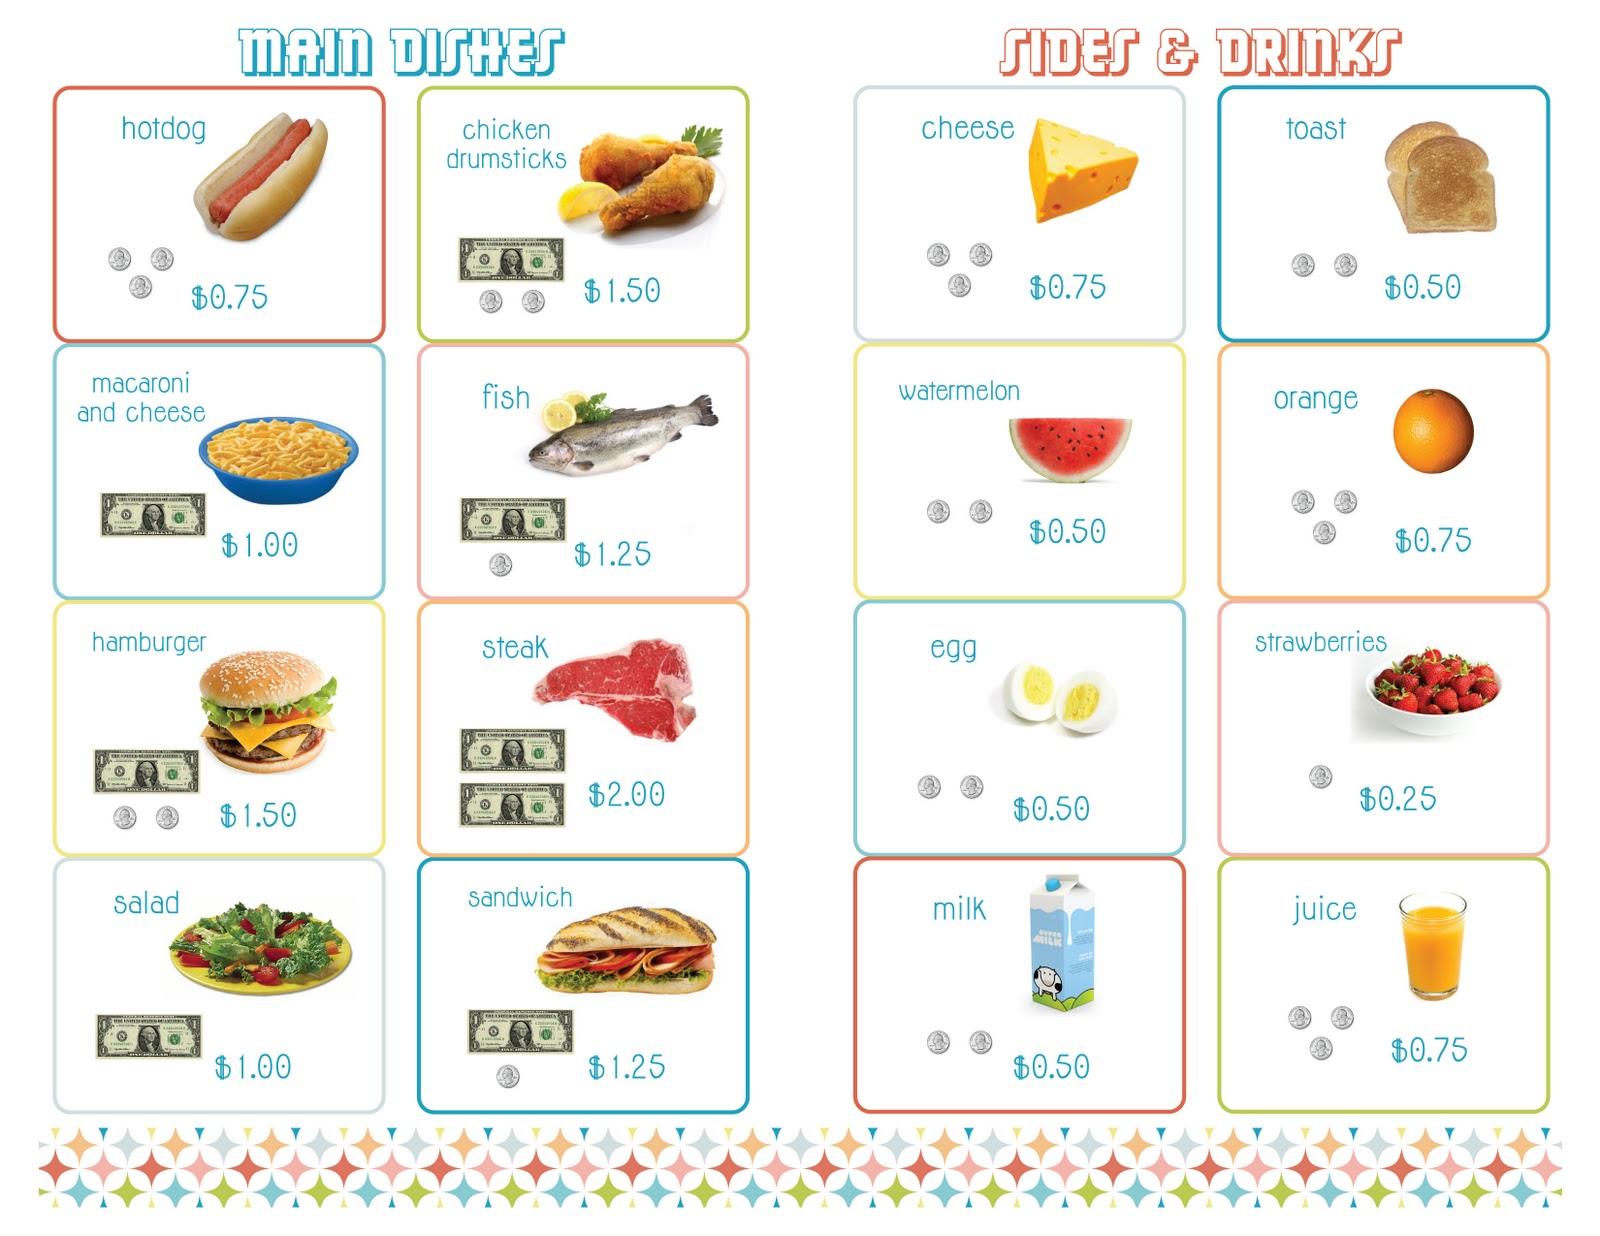 Worksheets Menu Math Worksheets worksheet 12751650 free printable menu math worksheets amy j delightful blog menus for playing restaurant worksheets